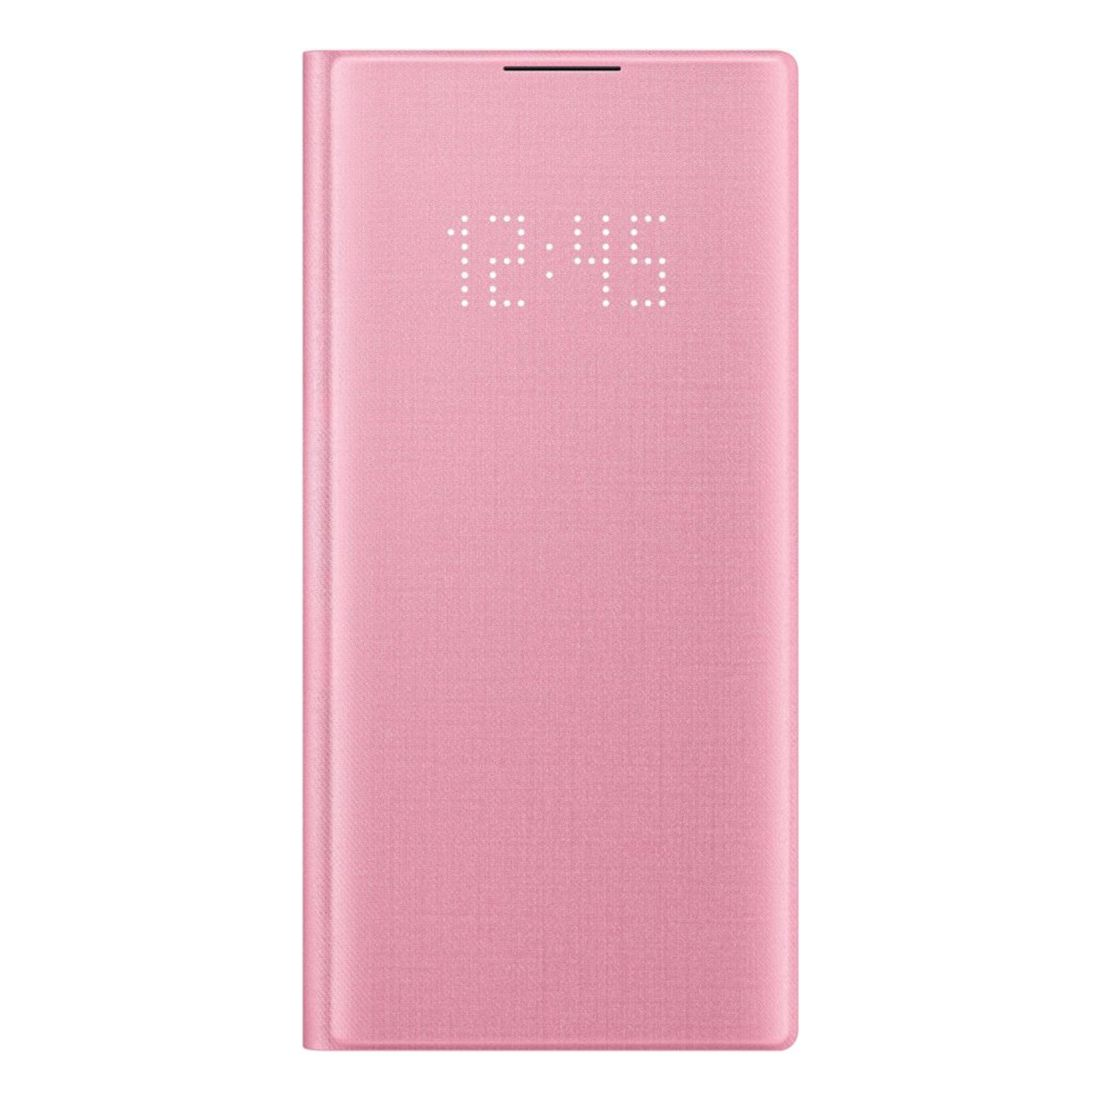 Samsung Galaxy Note 10 LED View Cover - Pink